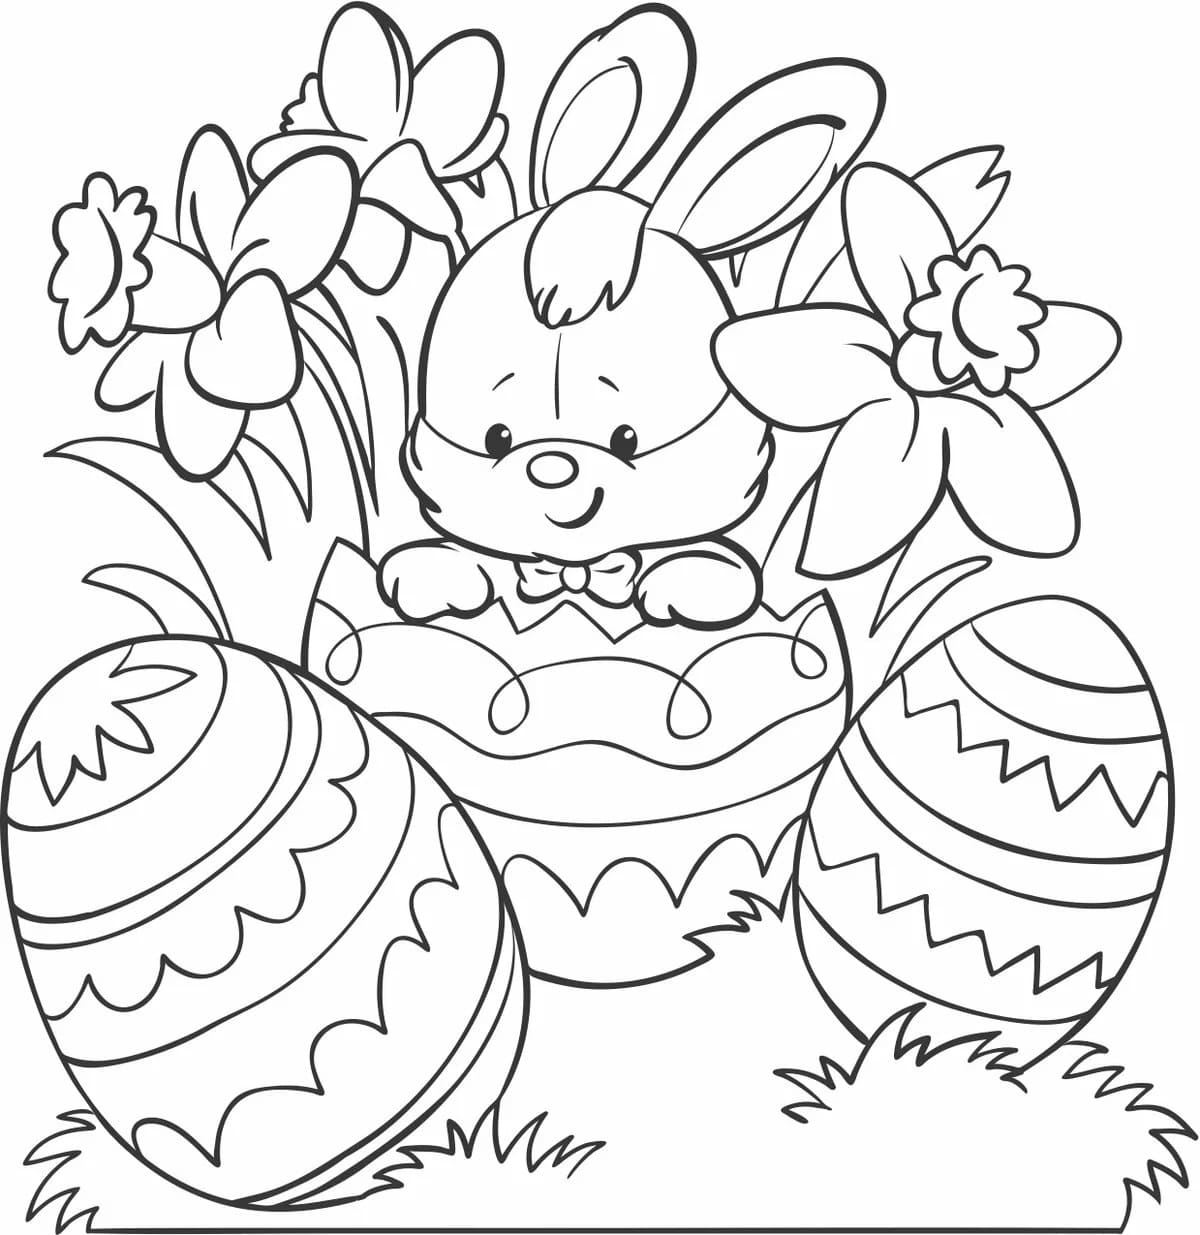 Easter Bunny Coloring Pages   18 images Free Printable